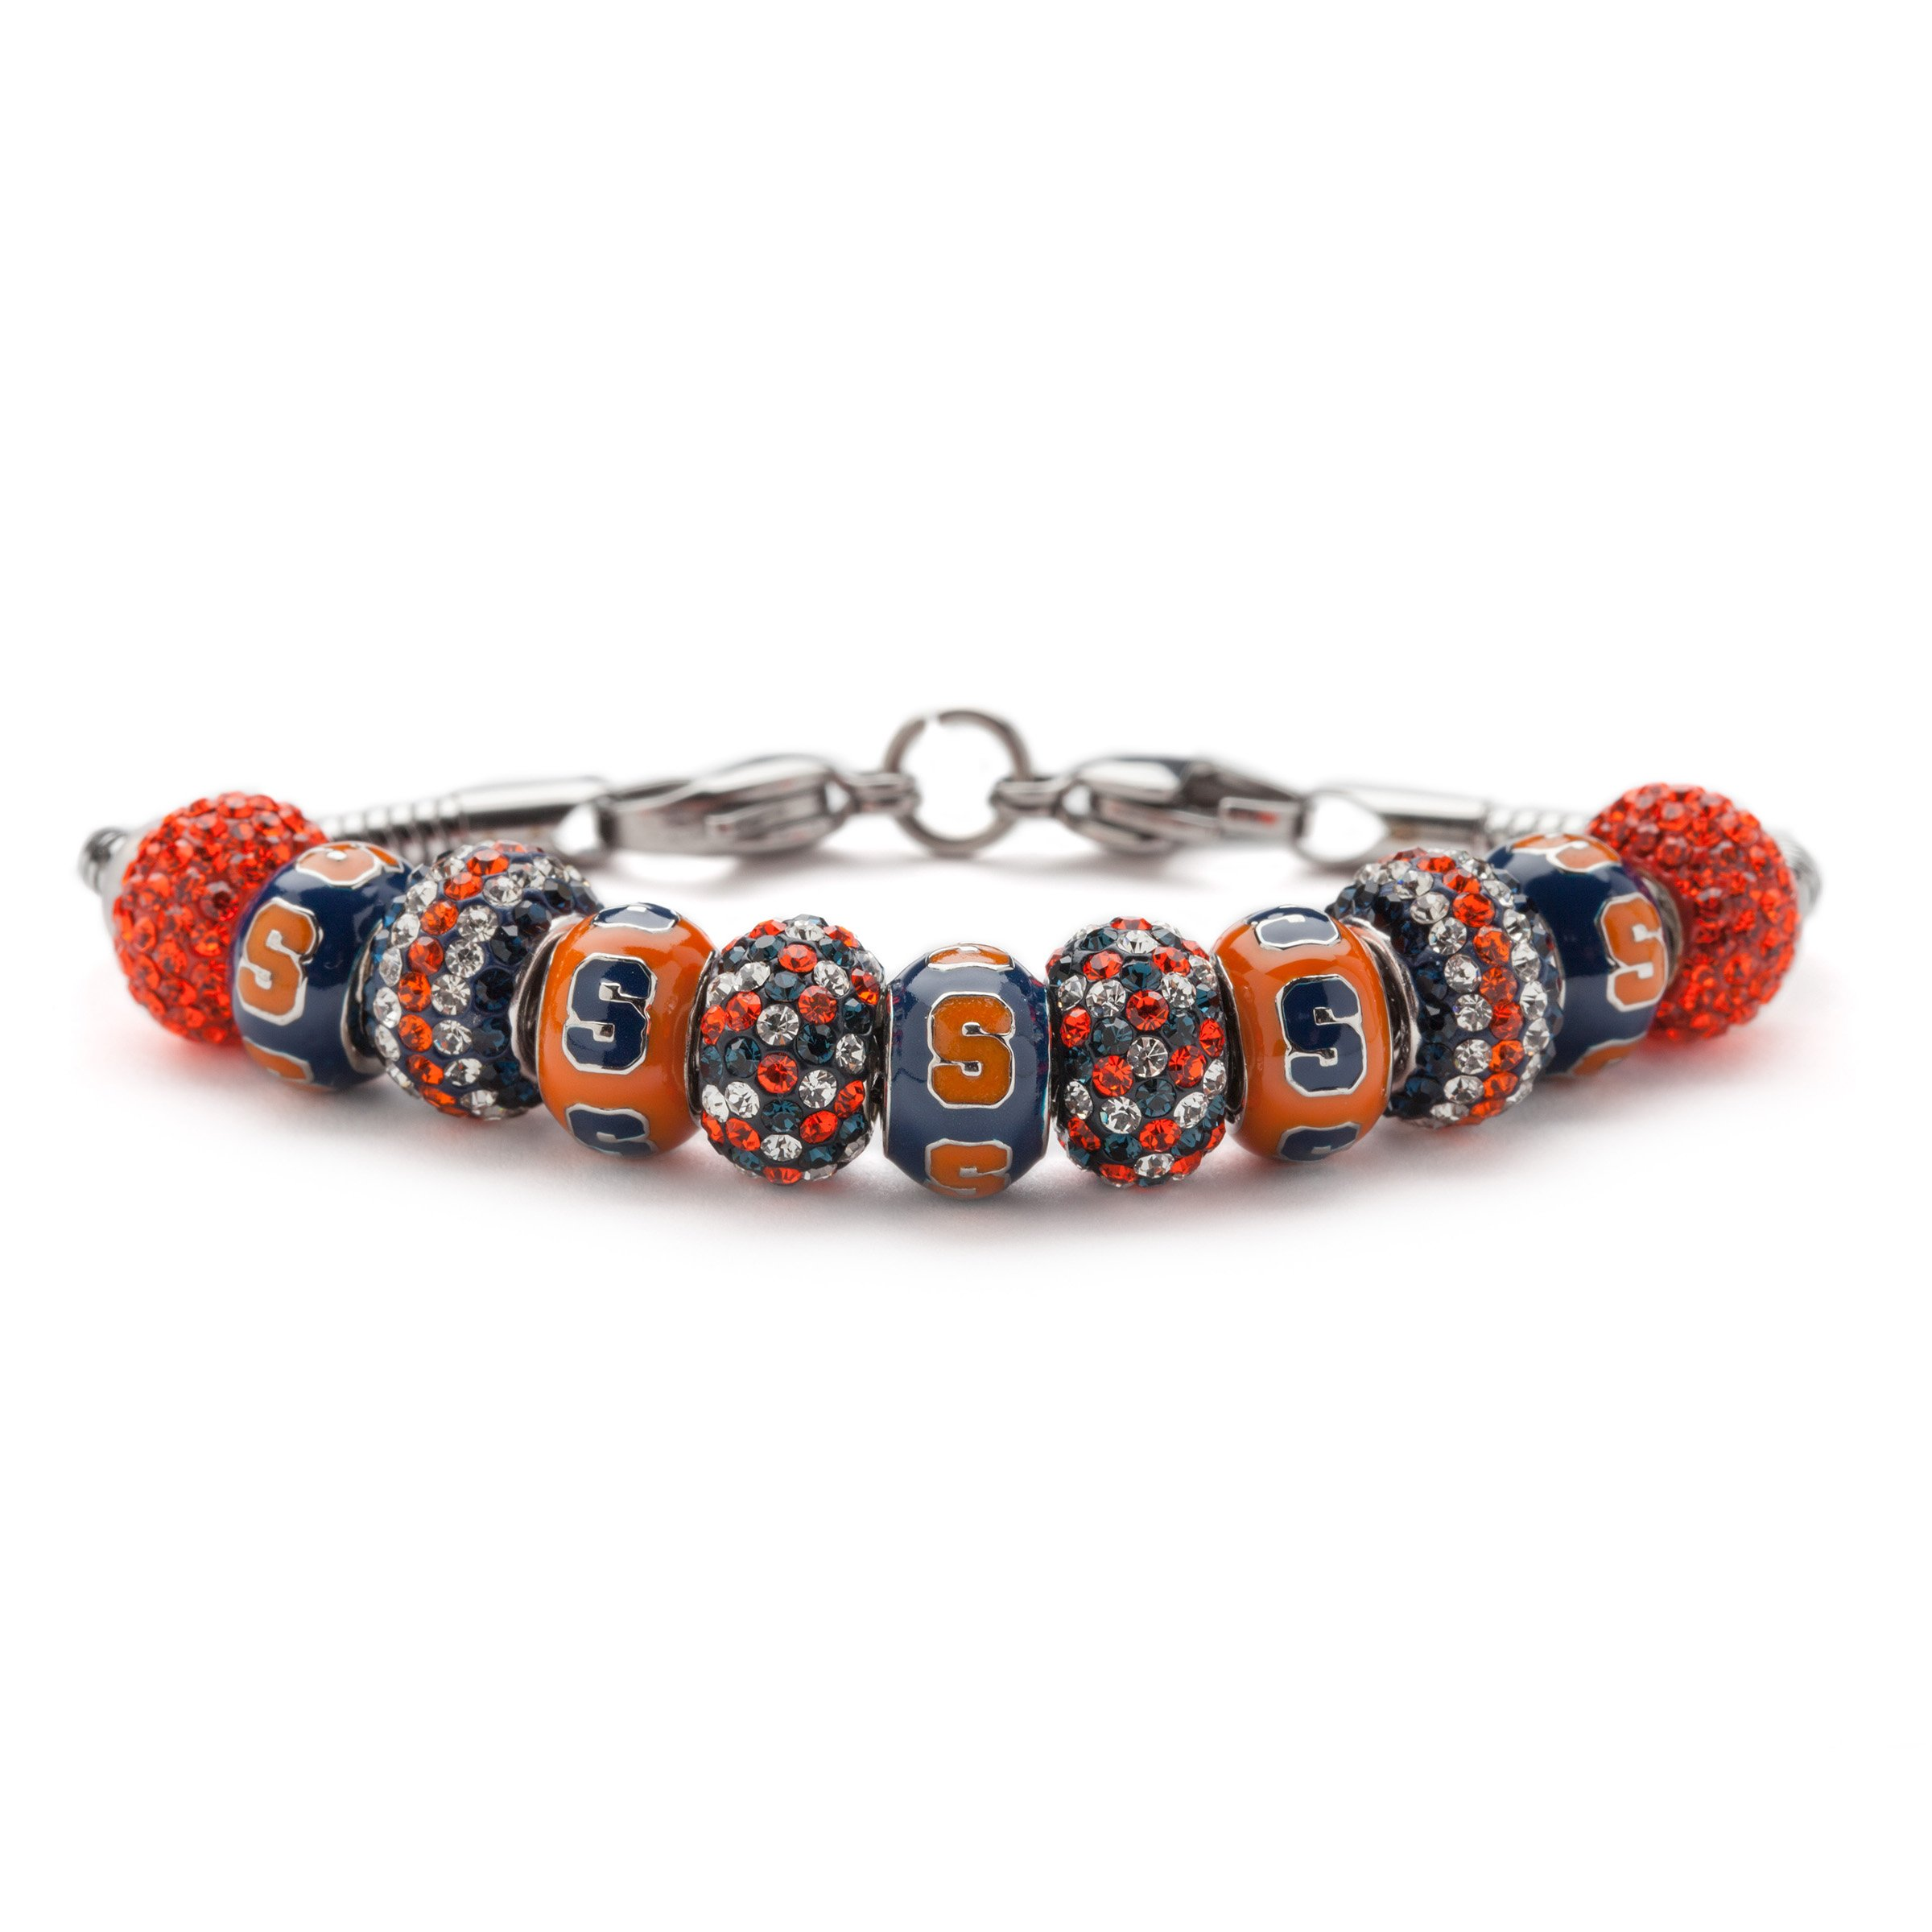 Syracuse University Bracelet | SU Oranges Bracelet - 5 S Beads and 6 Crystal Charms | Officially Licensed Syracuse University Jewelry | SU Gifts | Syracuse Charms | SU Charms | Stainless Steel